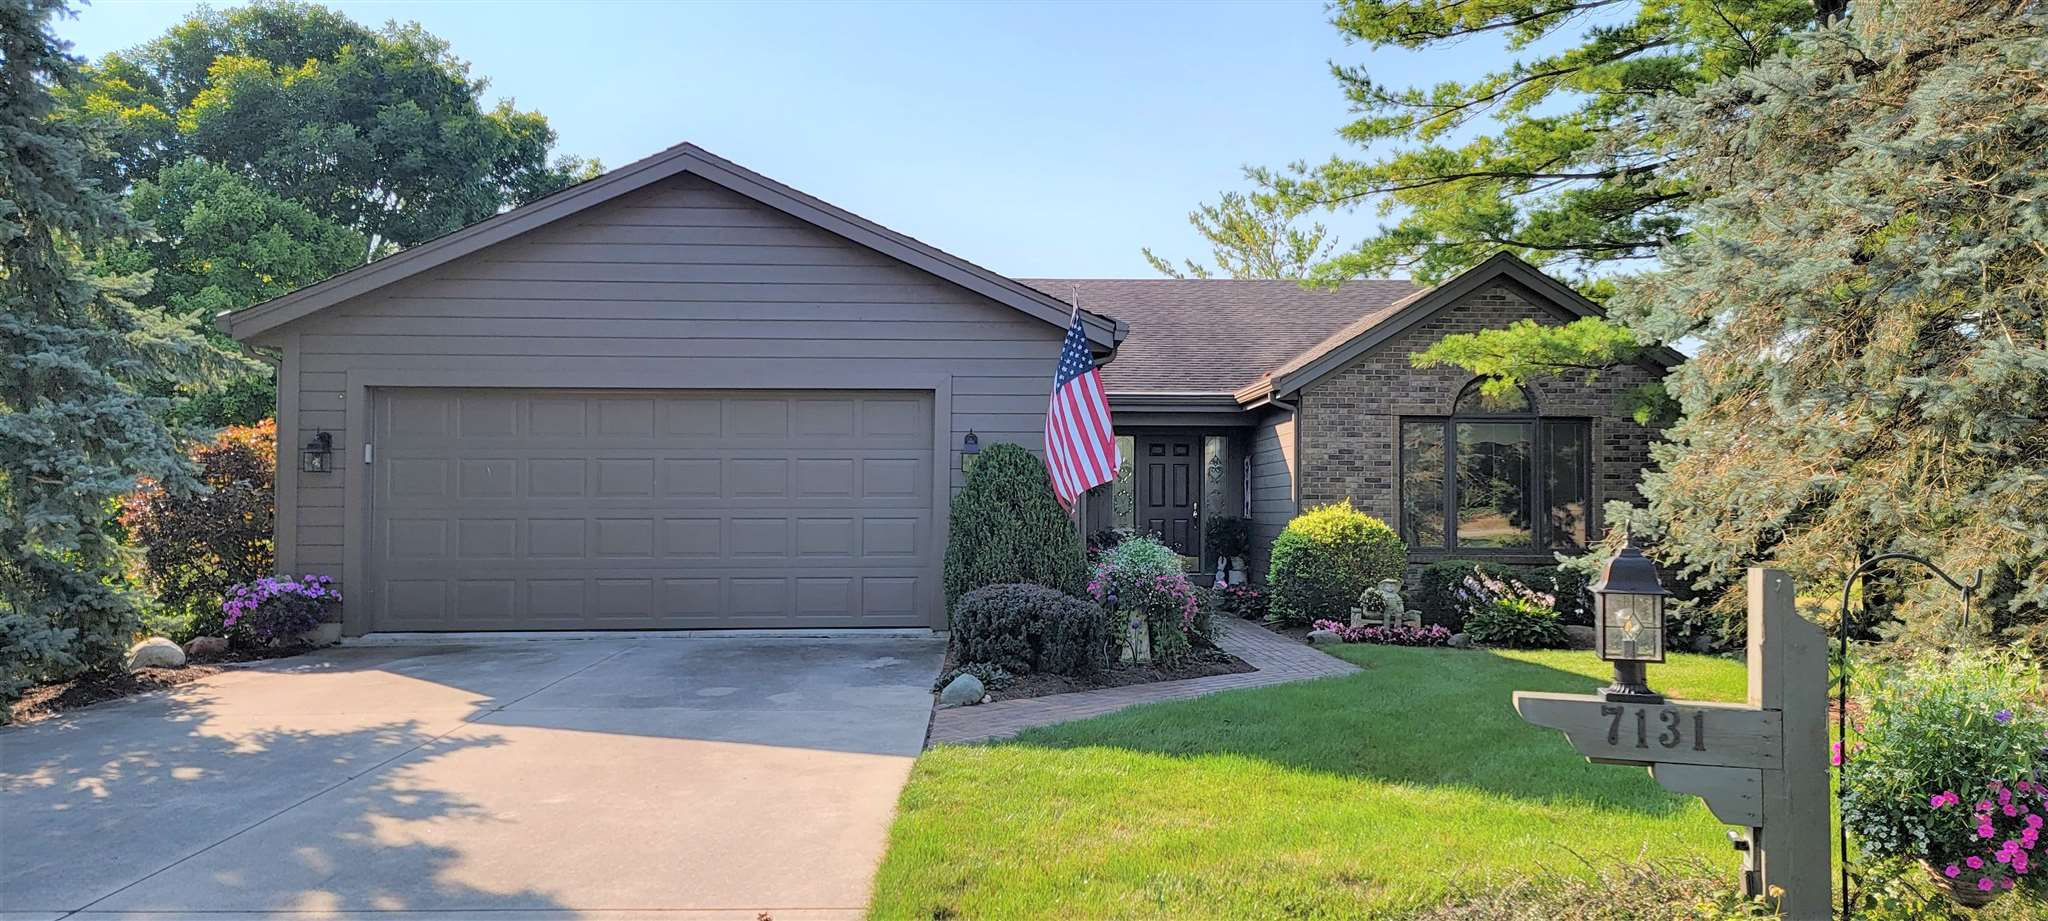 7131 Paddle Gate Court, Fort Wayne, IN 46804